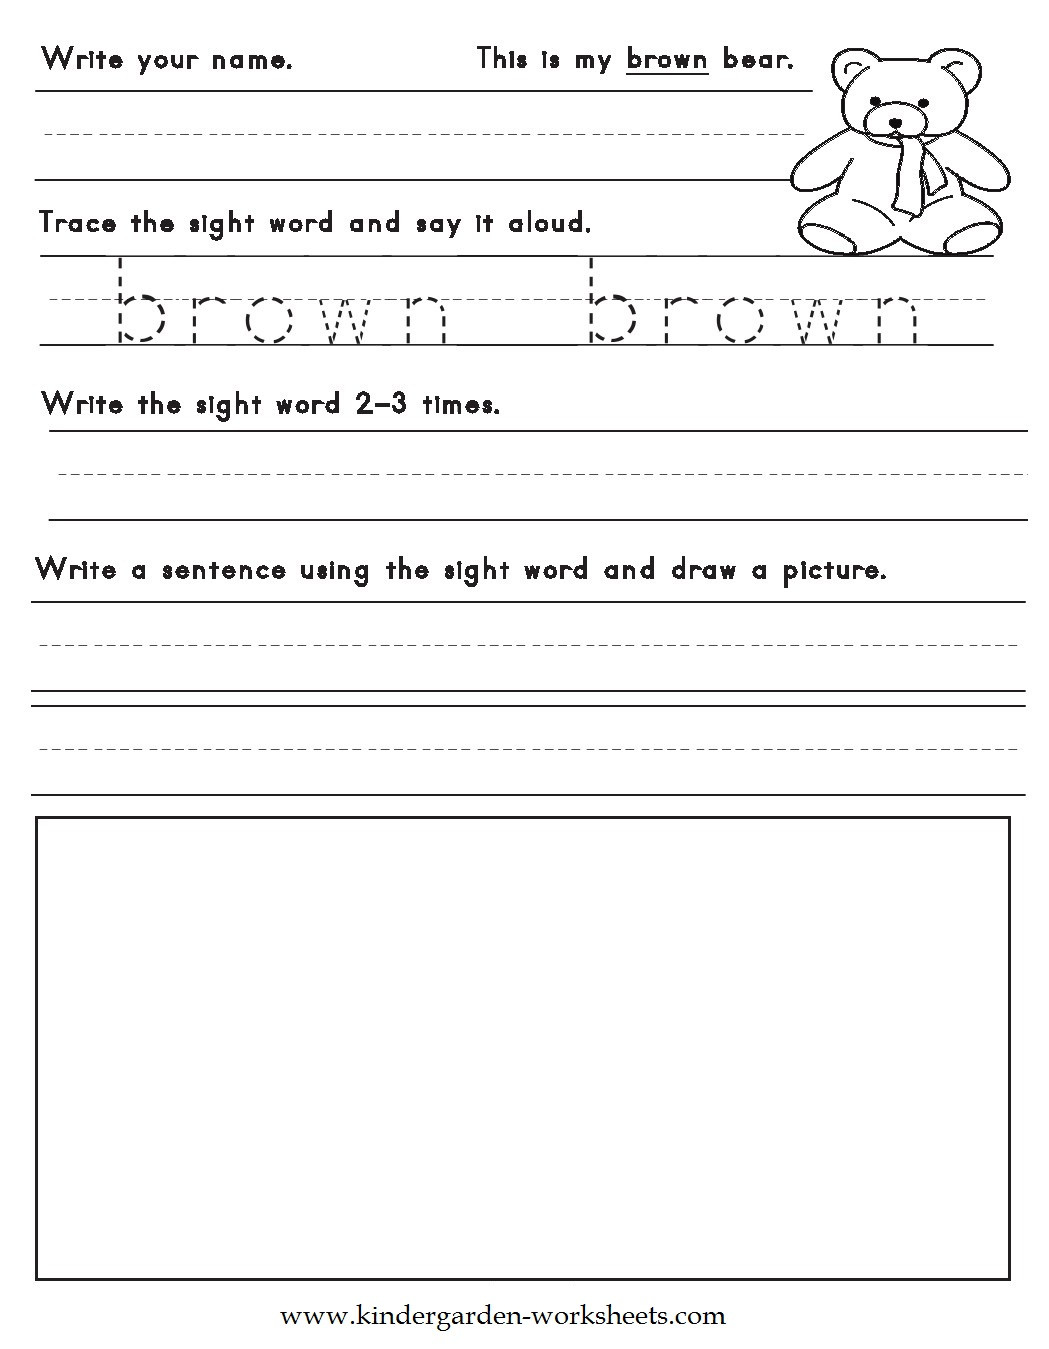 Color Words Handwriting Worksheets Kindergarten Worksheets Color Words Worksheets Brown